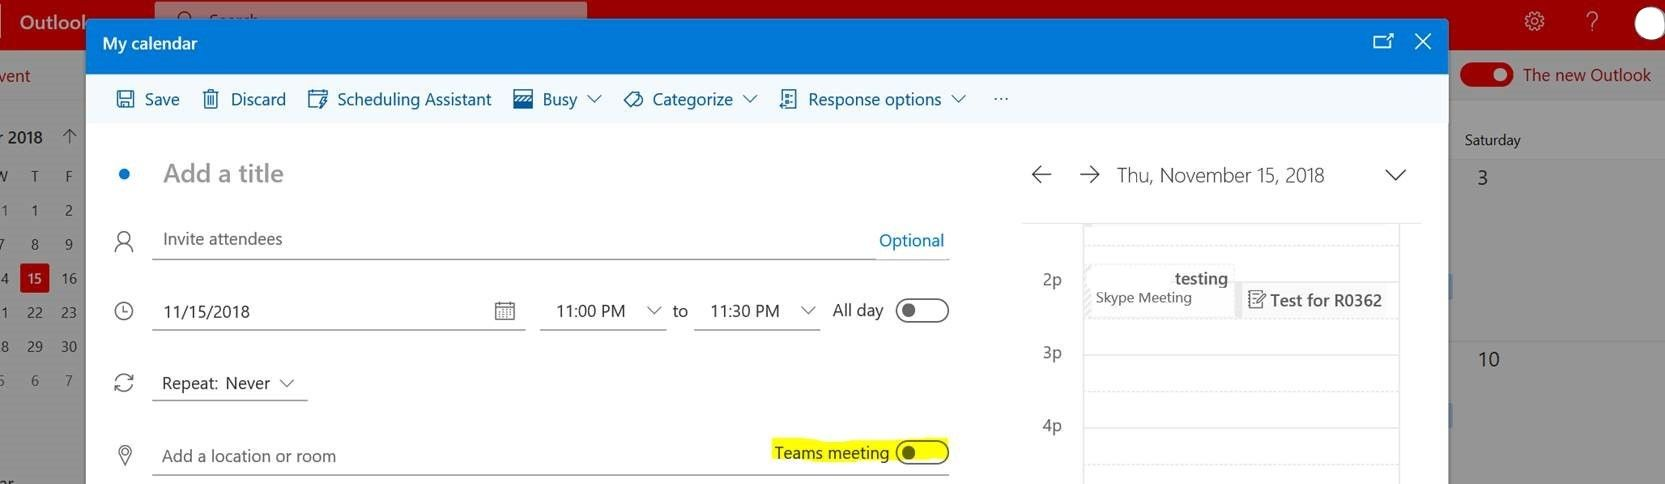 Why can't I see the Microsoft Teams Meeting add-in for